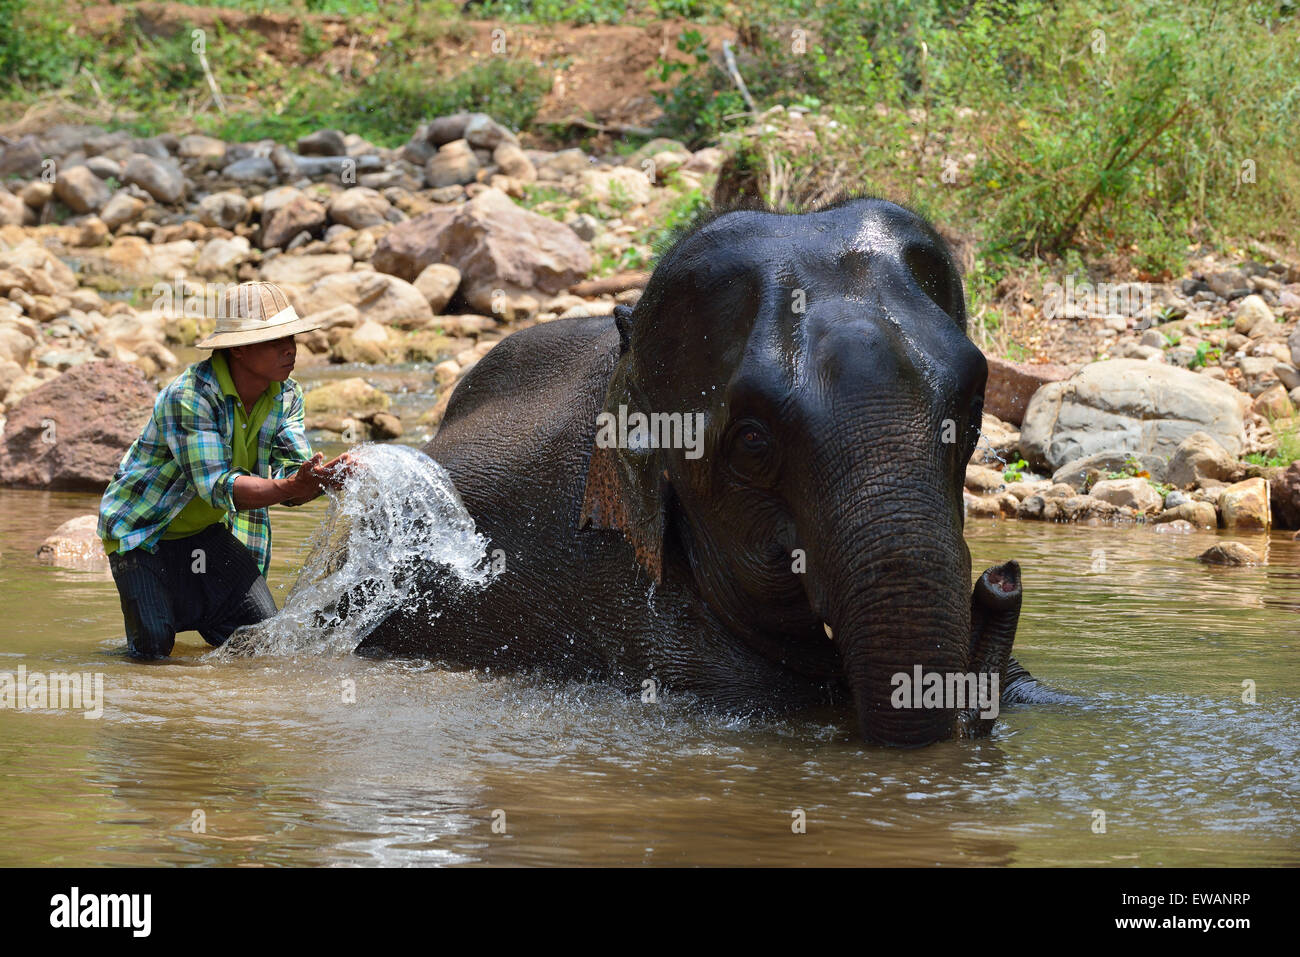 Mahout bathing a rescued logging elephant in the stream  at the Green Hill Valley Elephant Camp Kalaw, Myanmar Burma - Stock Image